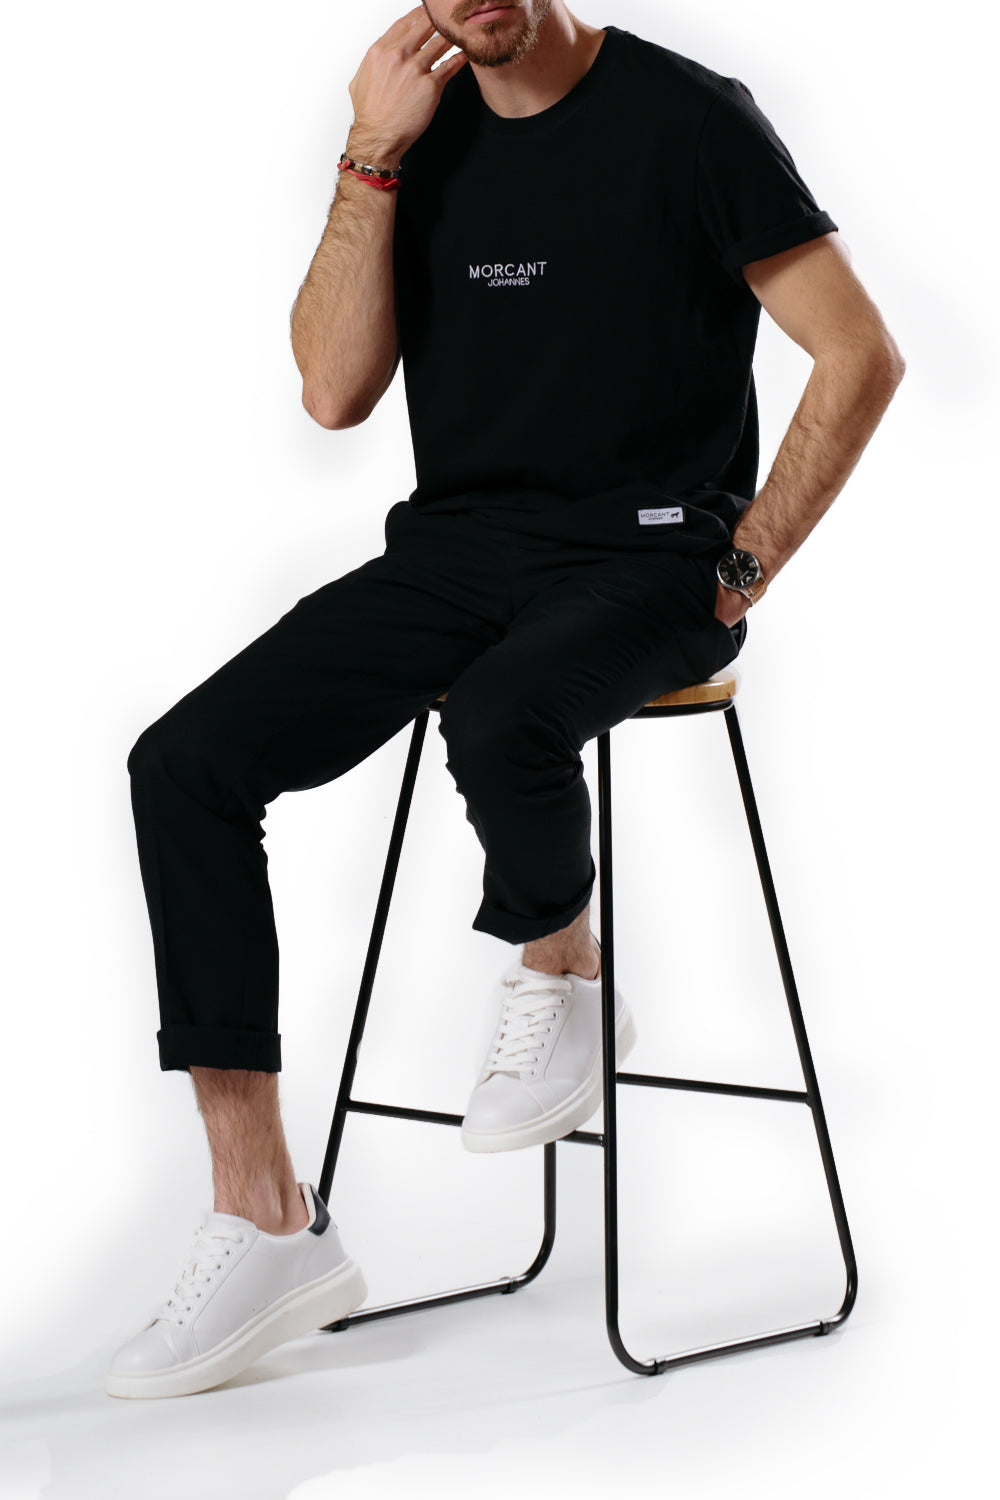 Male model wearing our black organic Morcant t-shirt, in a relaxed unisex fit, paired with slim fit black suit trousers and a white minimal sneaker.